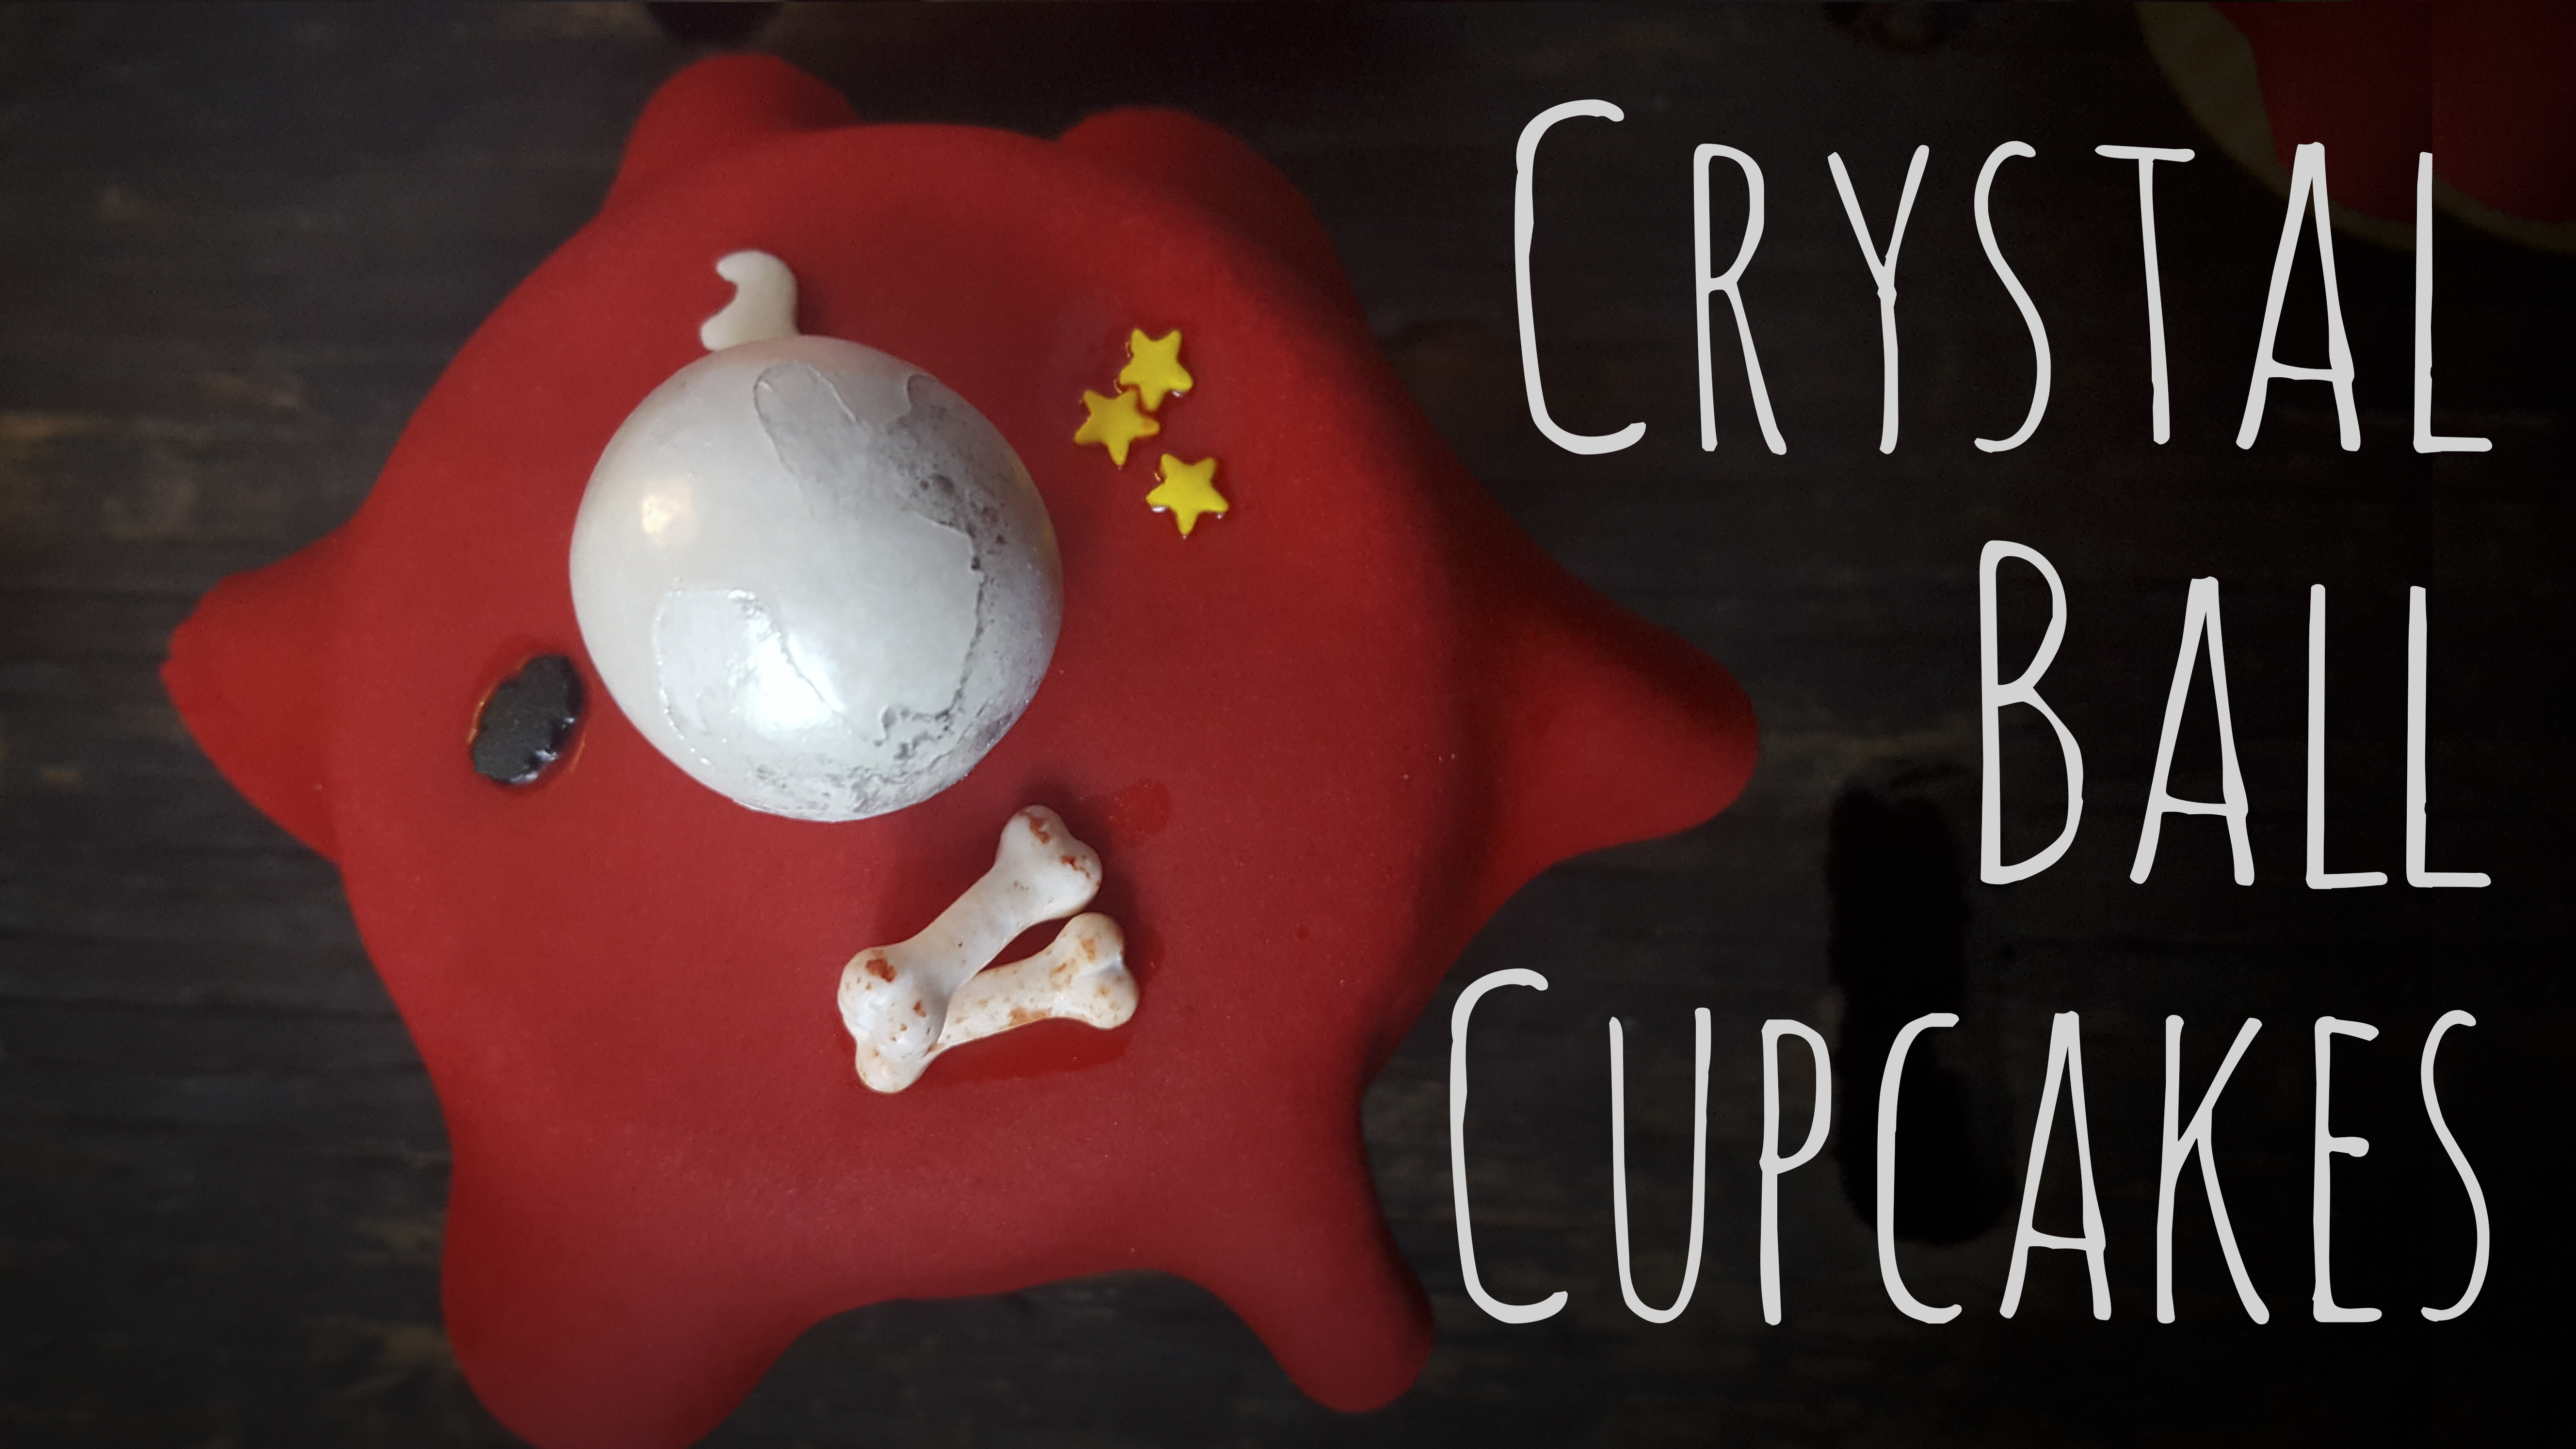 Learn how to make crystal ball cupcakes just in time for Halloween